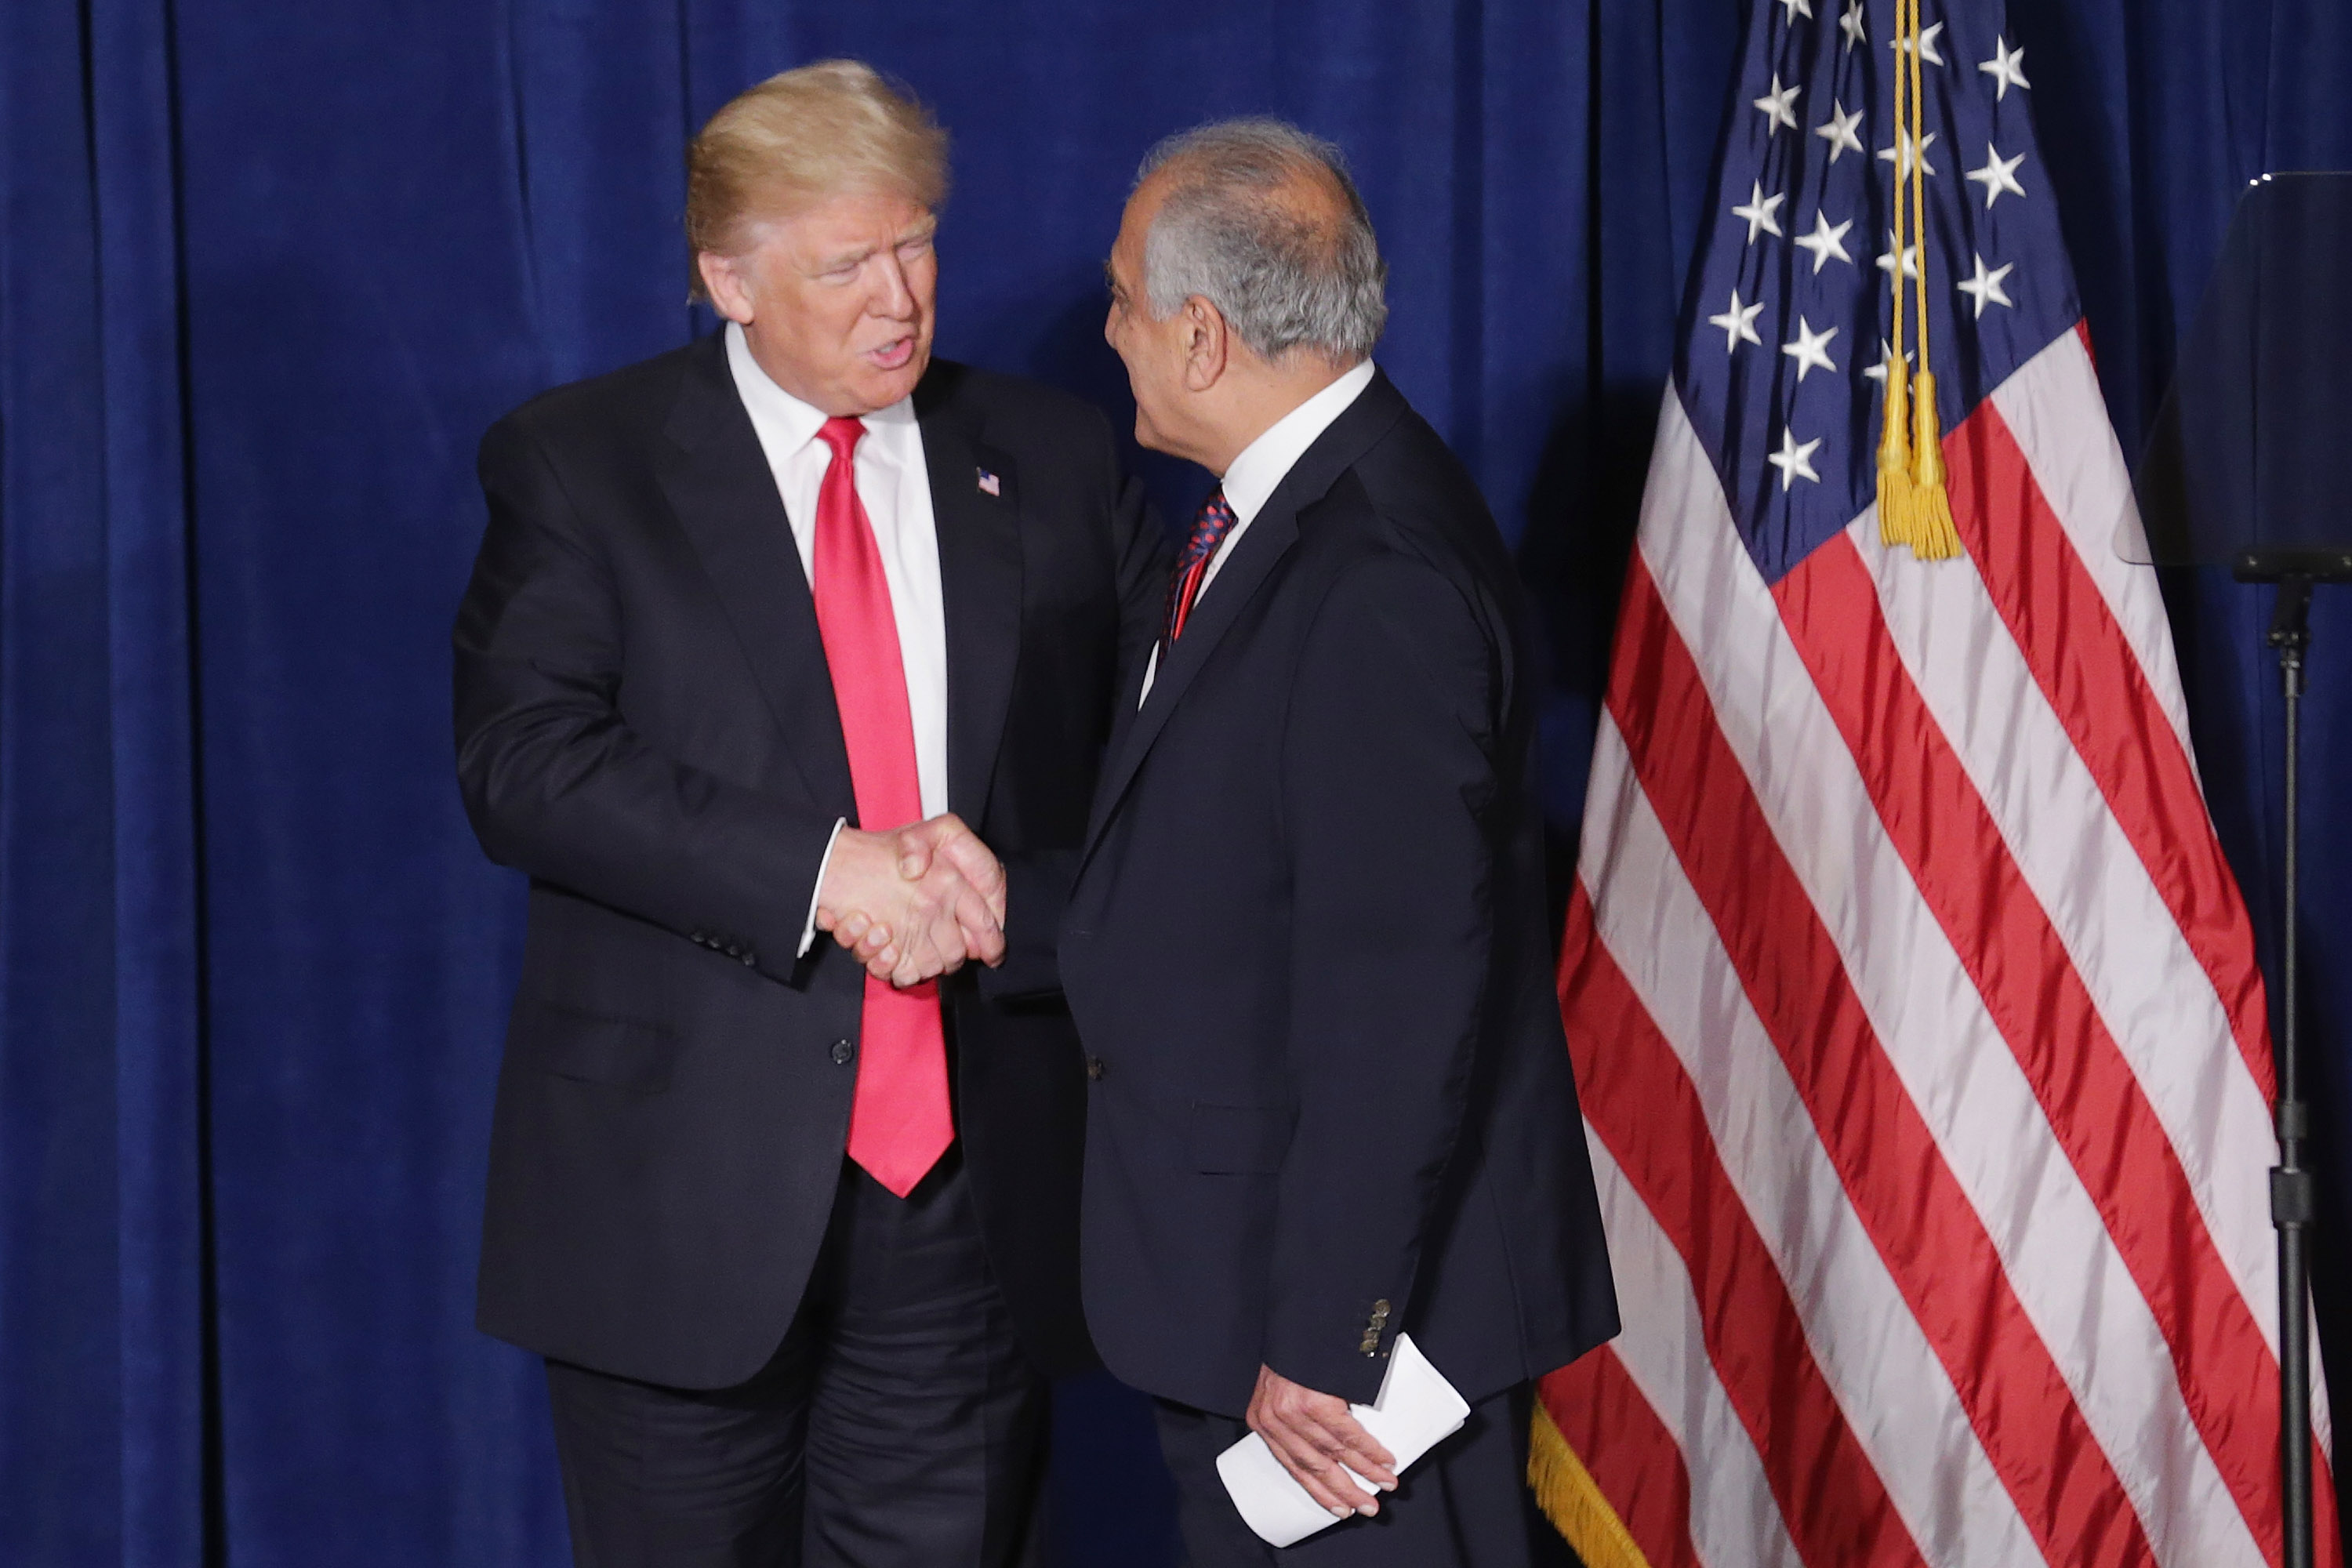 Republican presidential candidate Donald Trump (L) is welcomed to the stage by former U.S. Ambassador to Iraq and Afghanistan Zalmay Khalilzad at the Mayflower Hotel April 27, 2016 in Washington, DC. (Photo by Chip Somodevilla/Getty Images)